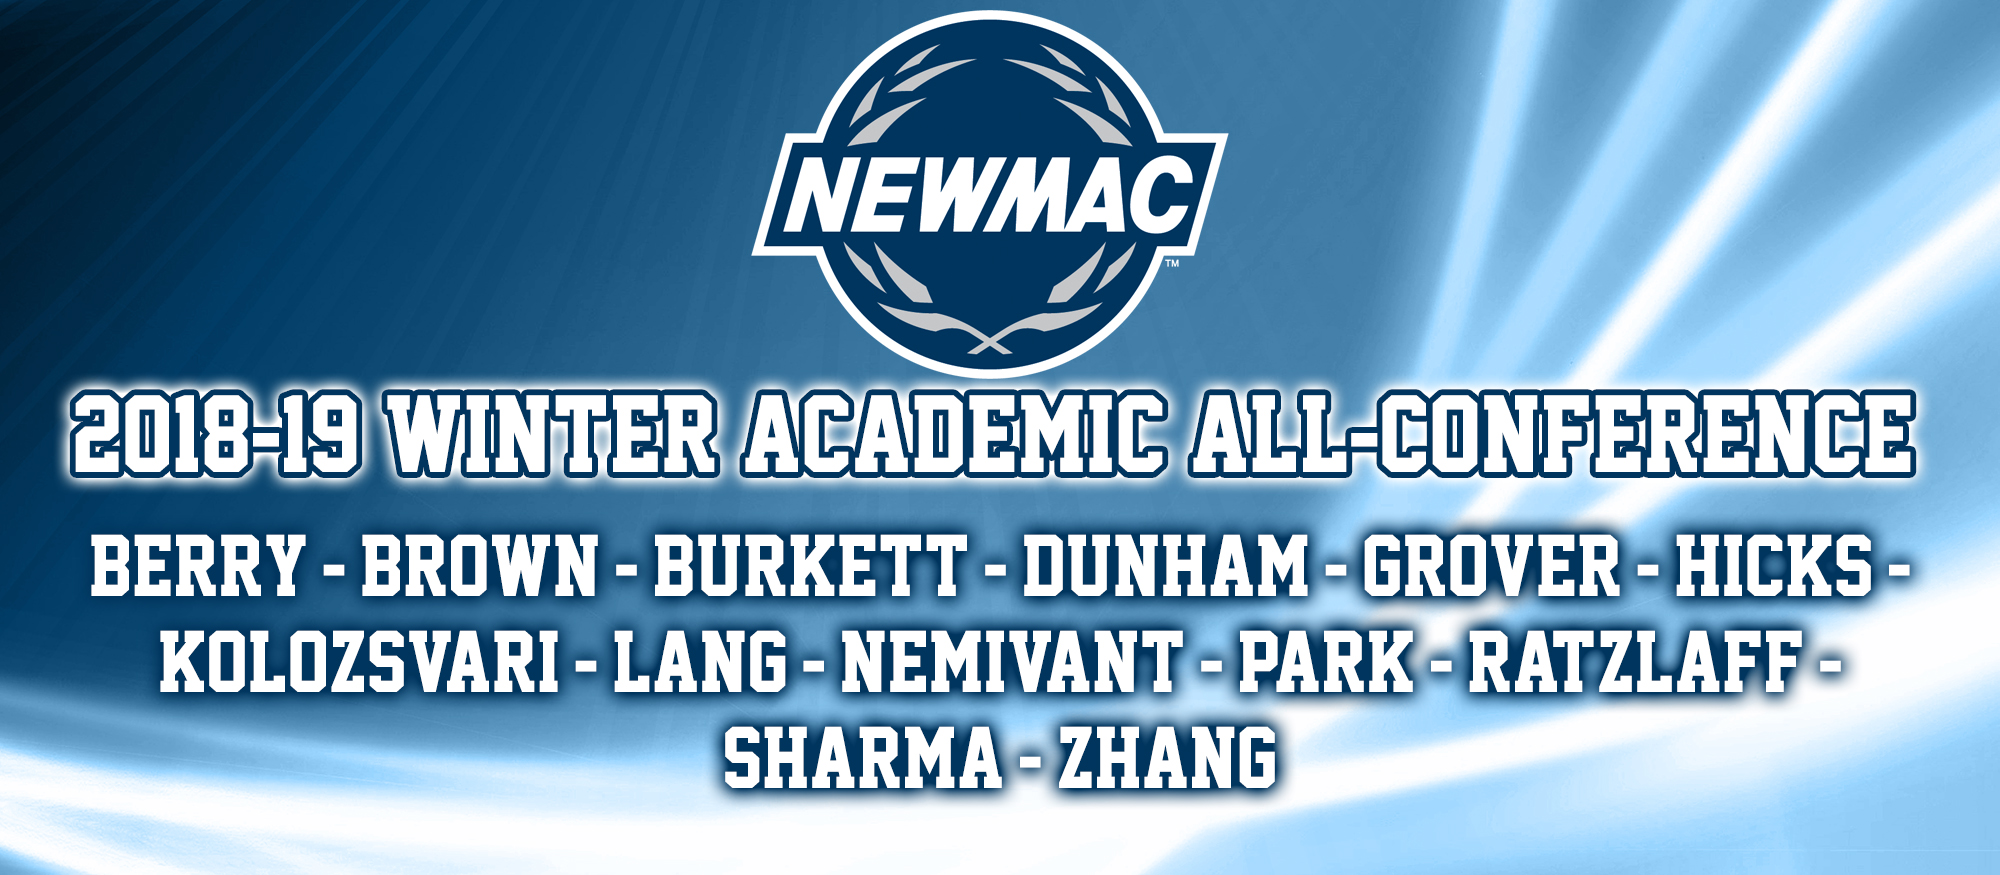 Photo showing the 13 student-athletes selected to the 2018-19 NEWMAC Academic All-Conference Teams for swimming & diving and basketball.